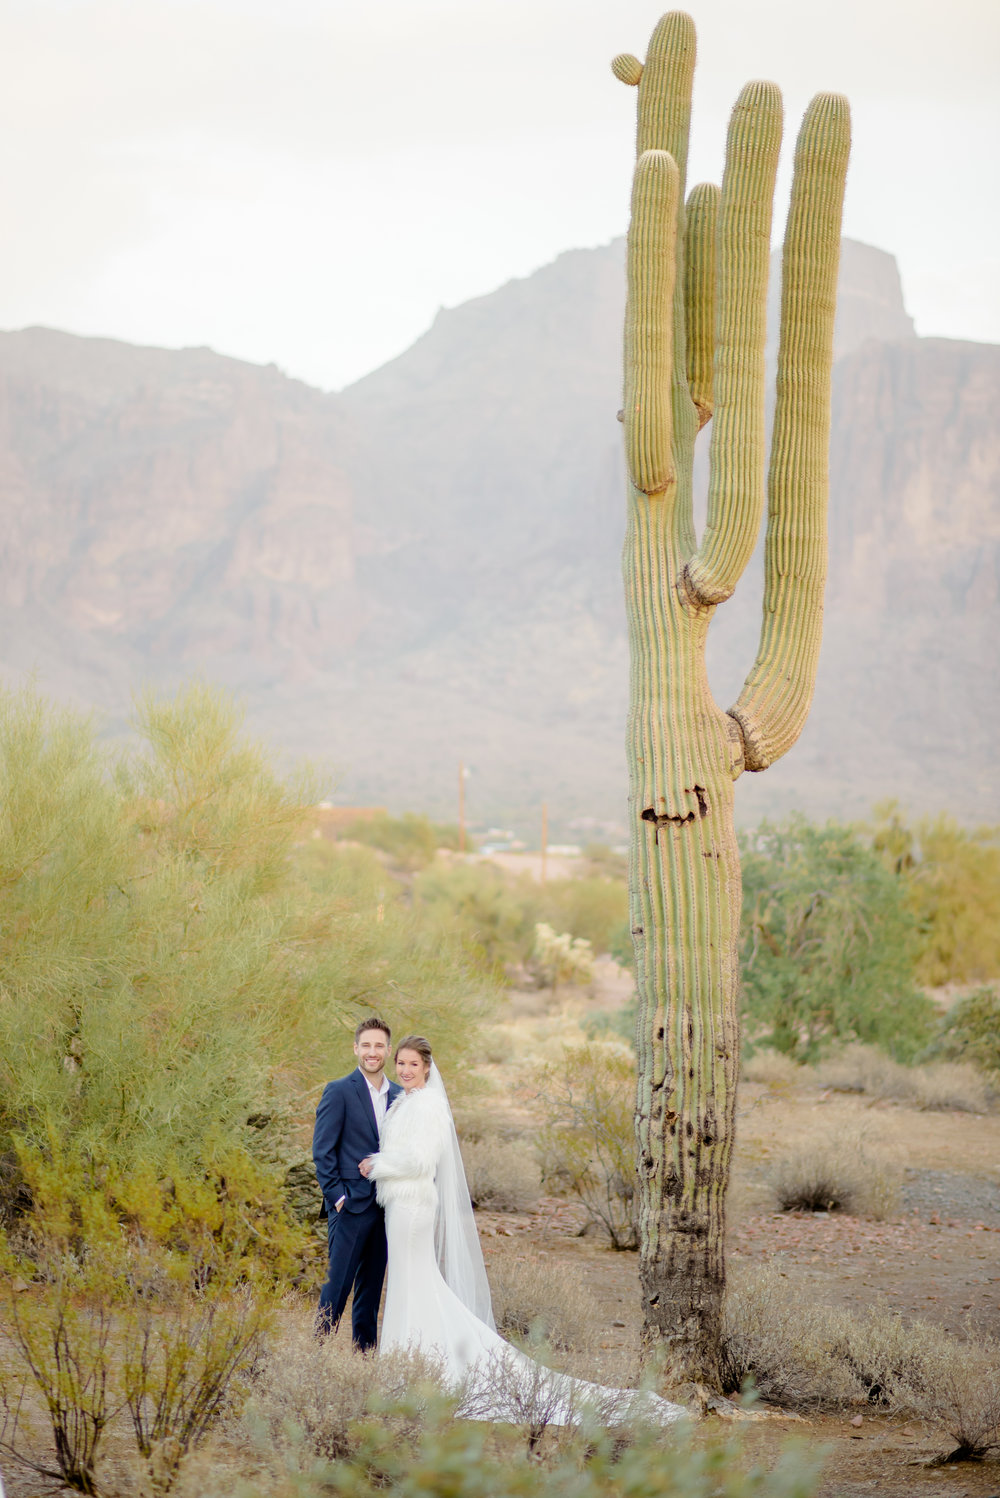 The Paseo Wedding Premiere Destination Arizona Location - www.theamburgeys.com-832.jpg